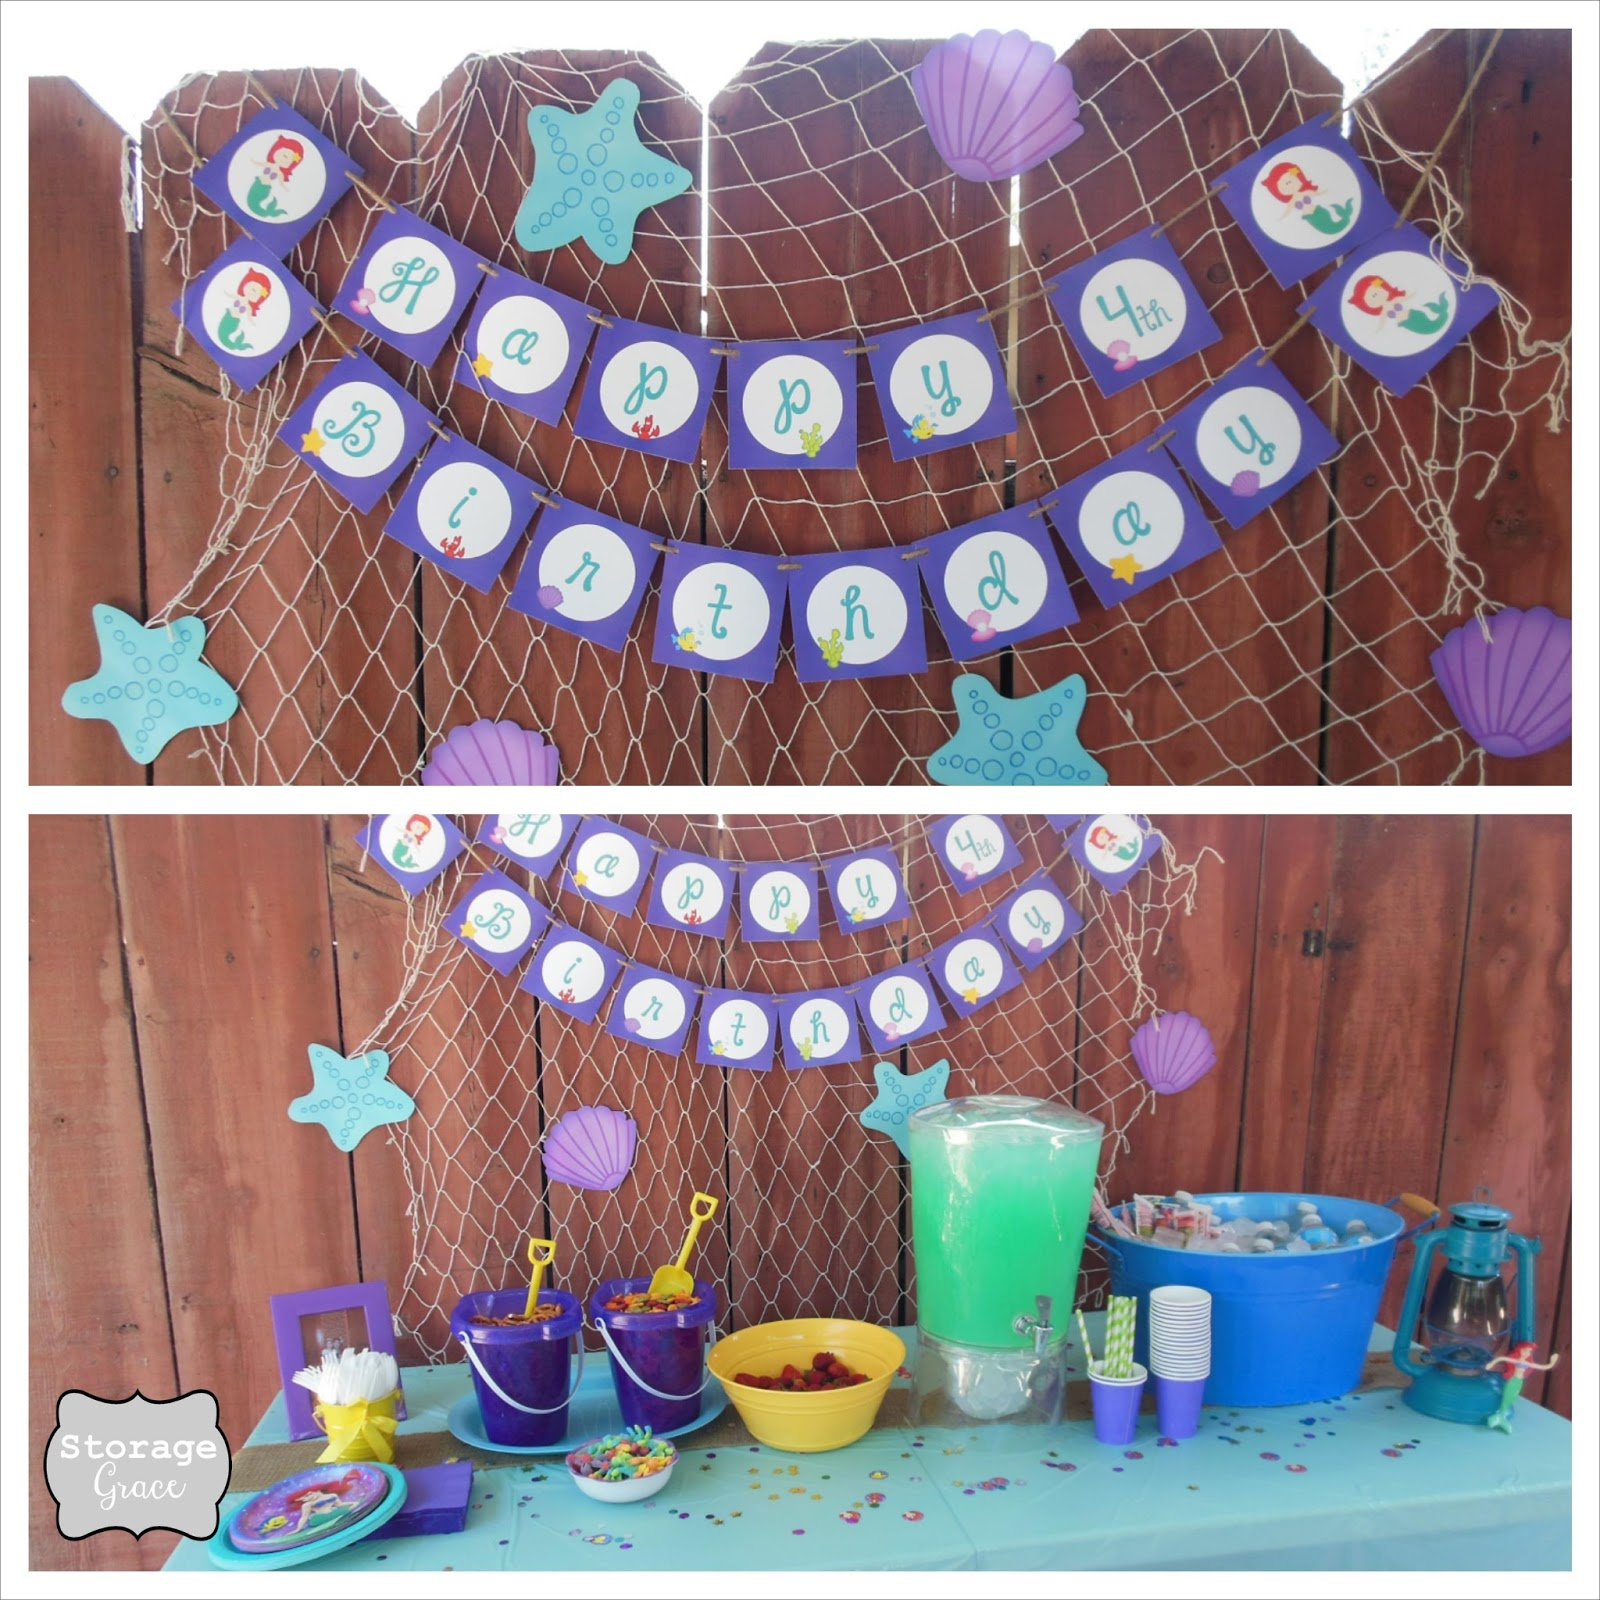 Storage grace little mermaid 4th birthday party for Fish net decoration ideas